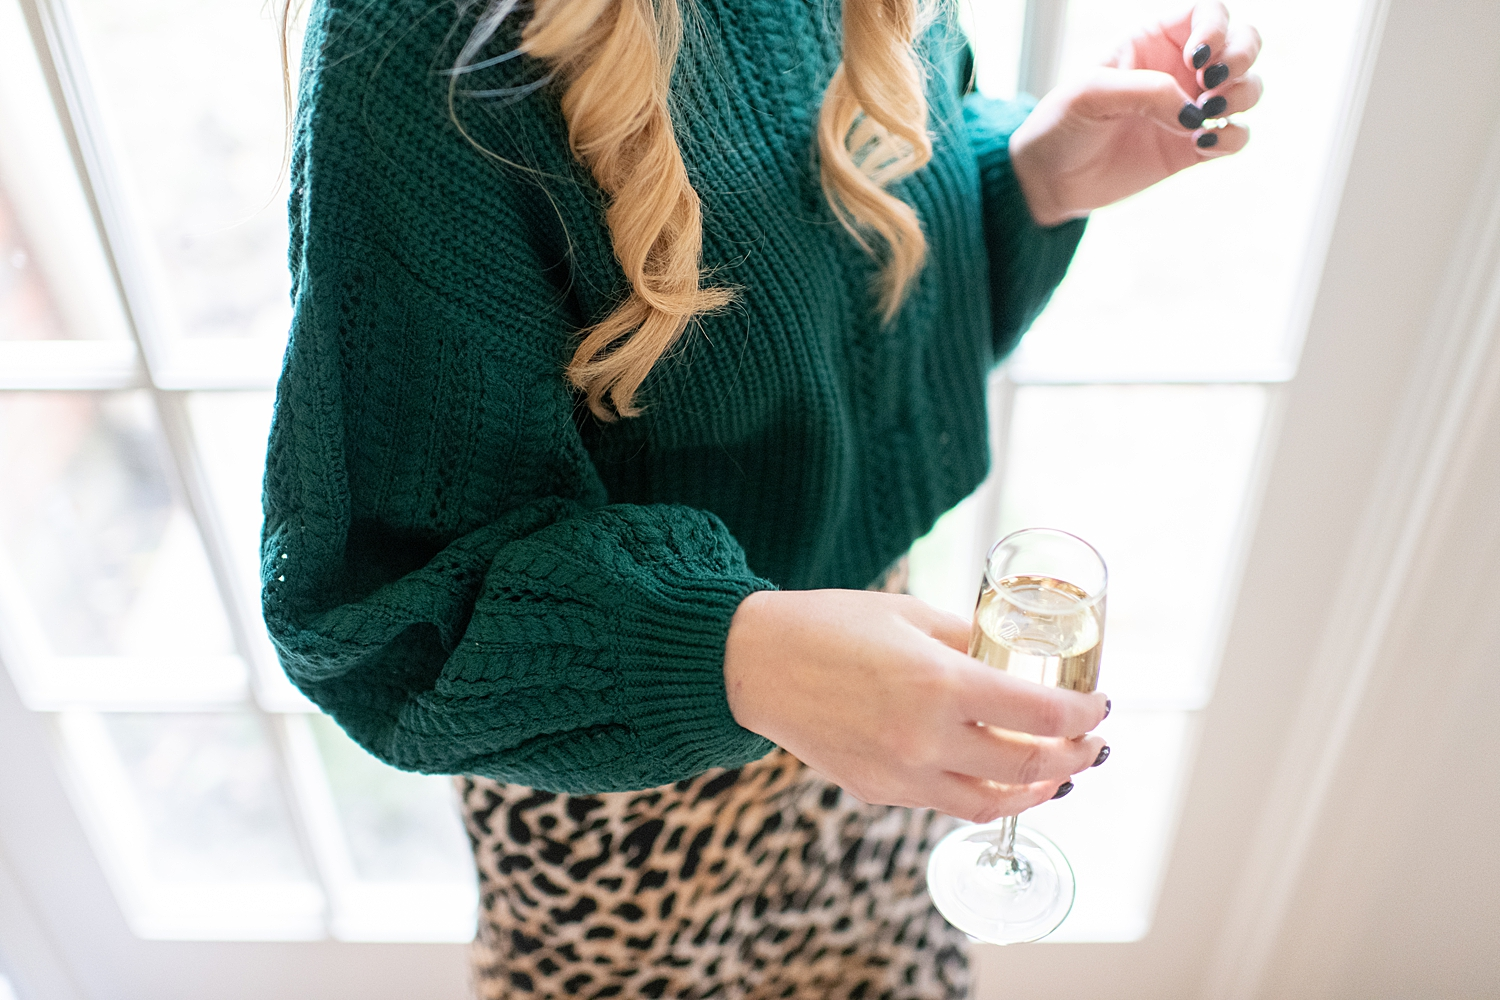 Fancy Ashley x Social Threads collection featured by top Houston fashion blogger, Fancy Ashley: image of a woman wearing a Social Threads Leopard skirt and green sweater